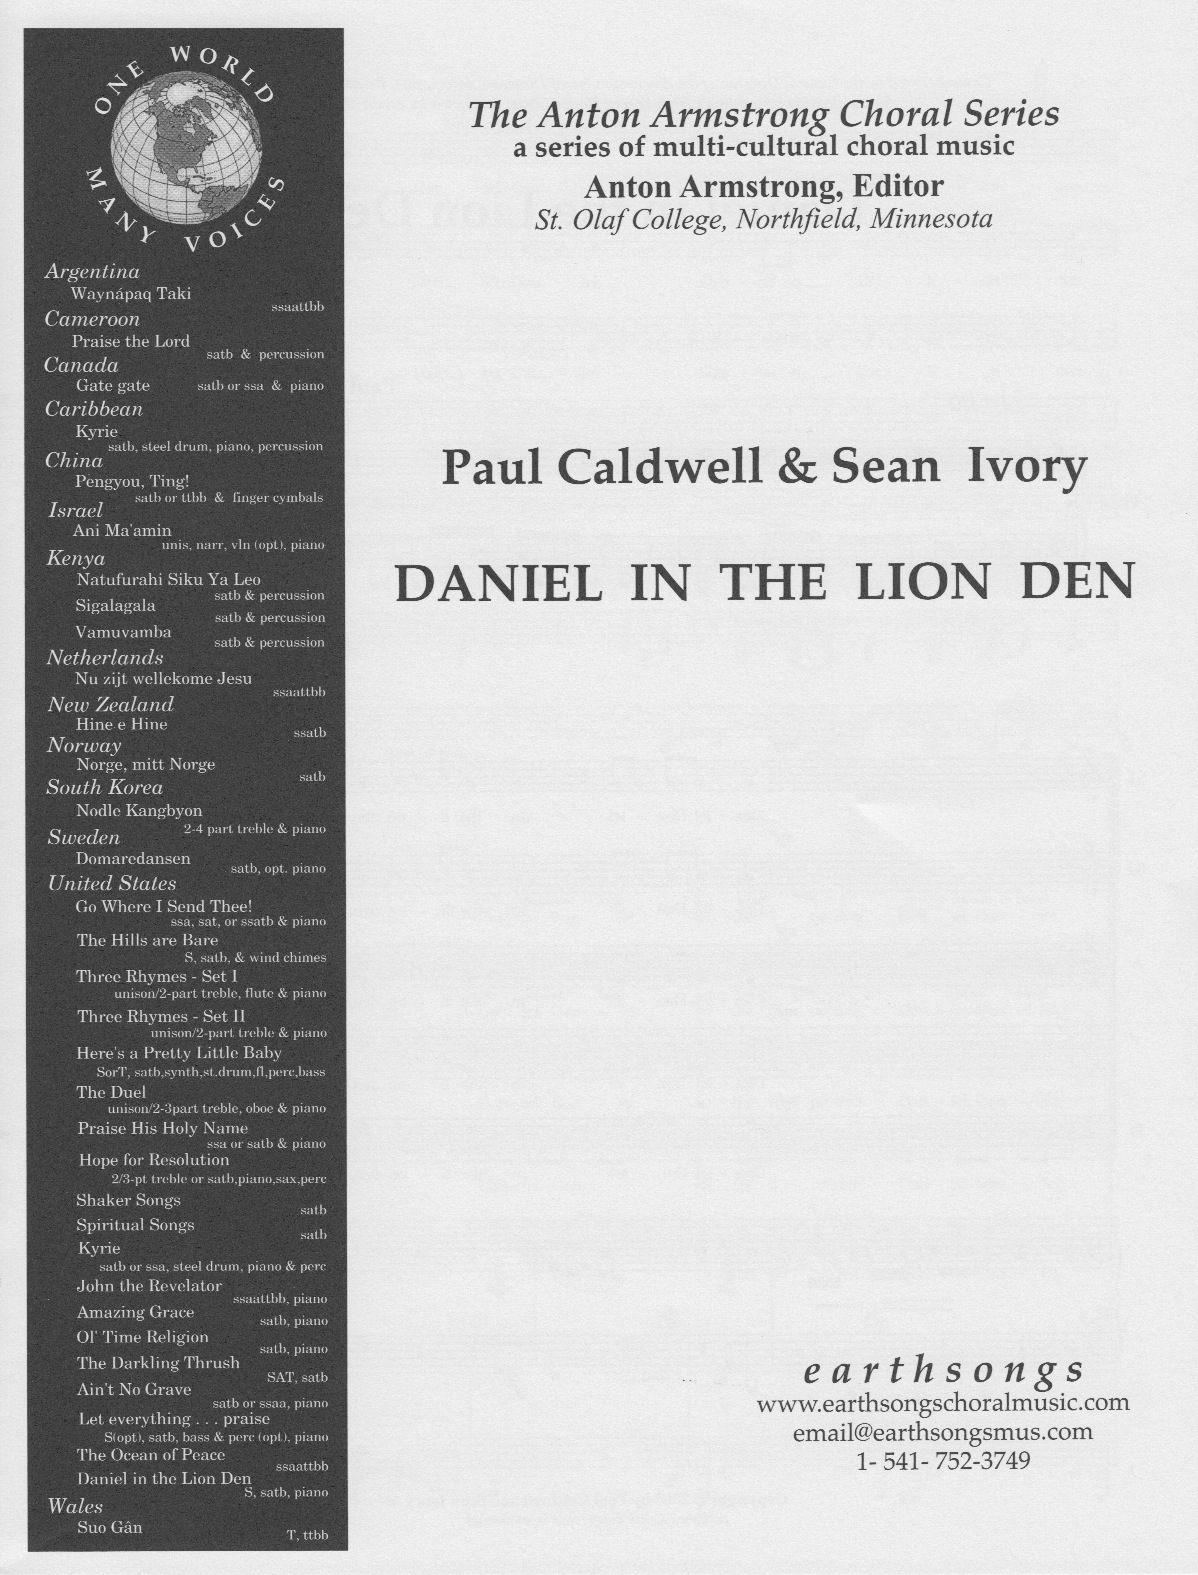 daniel in the lion den (ssatb)